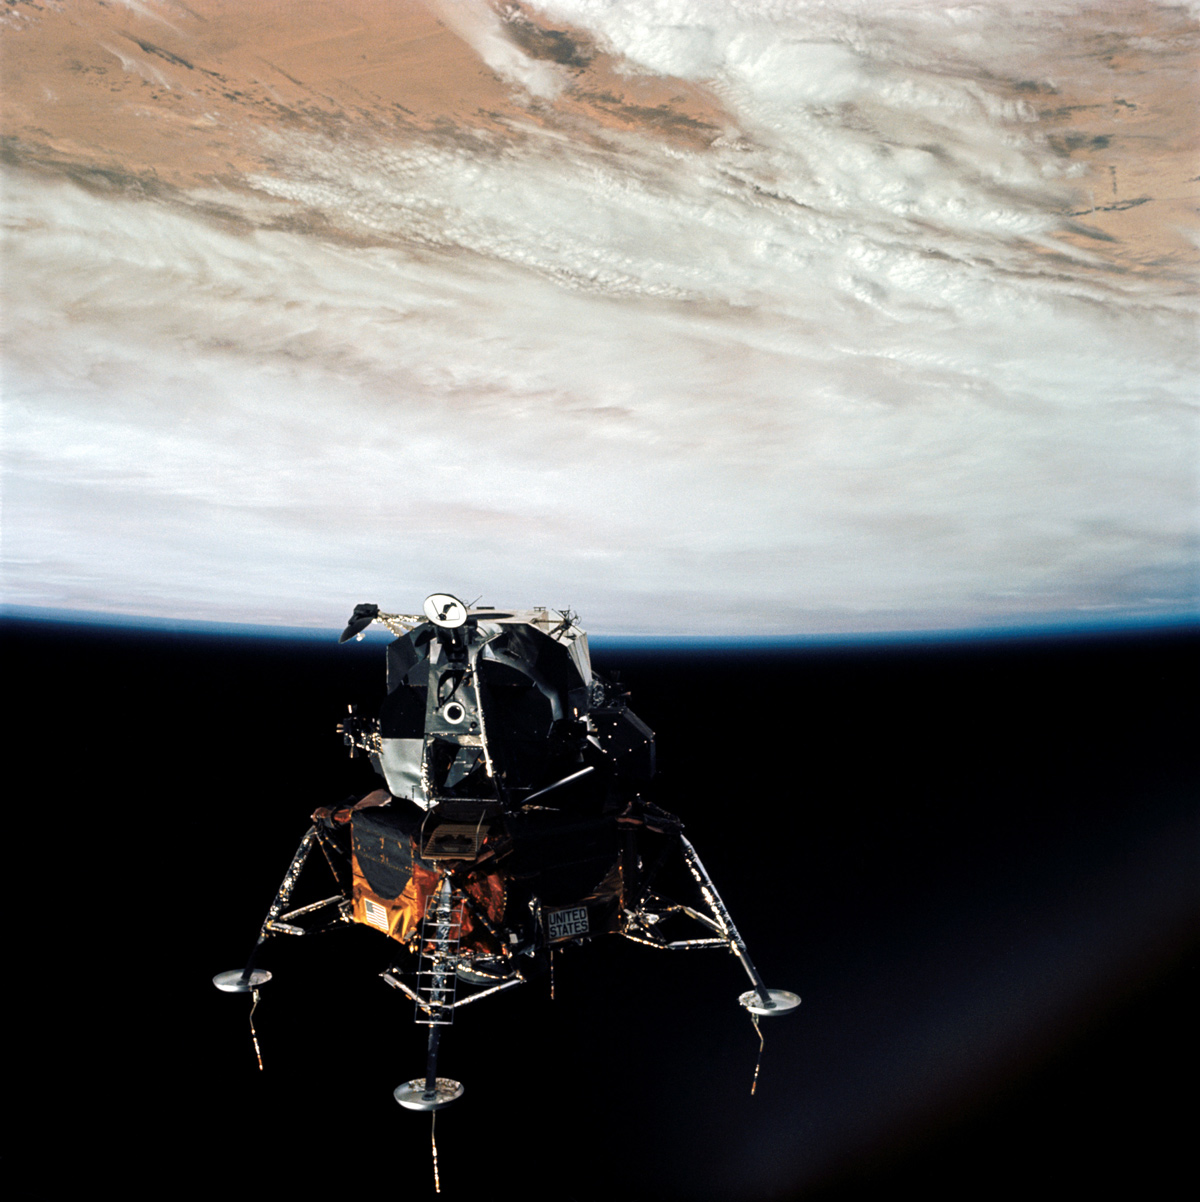 Apollo 9 Lunar Module in space with Earth in the background